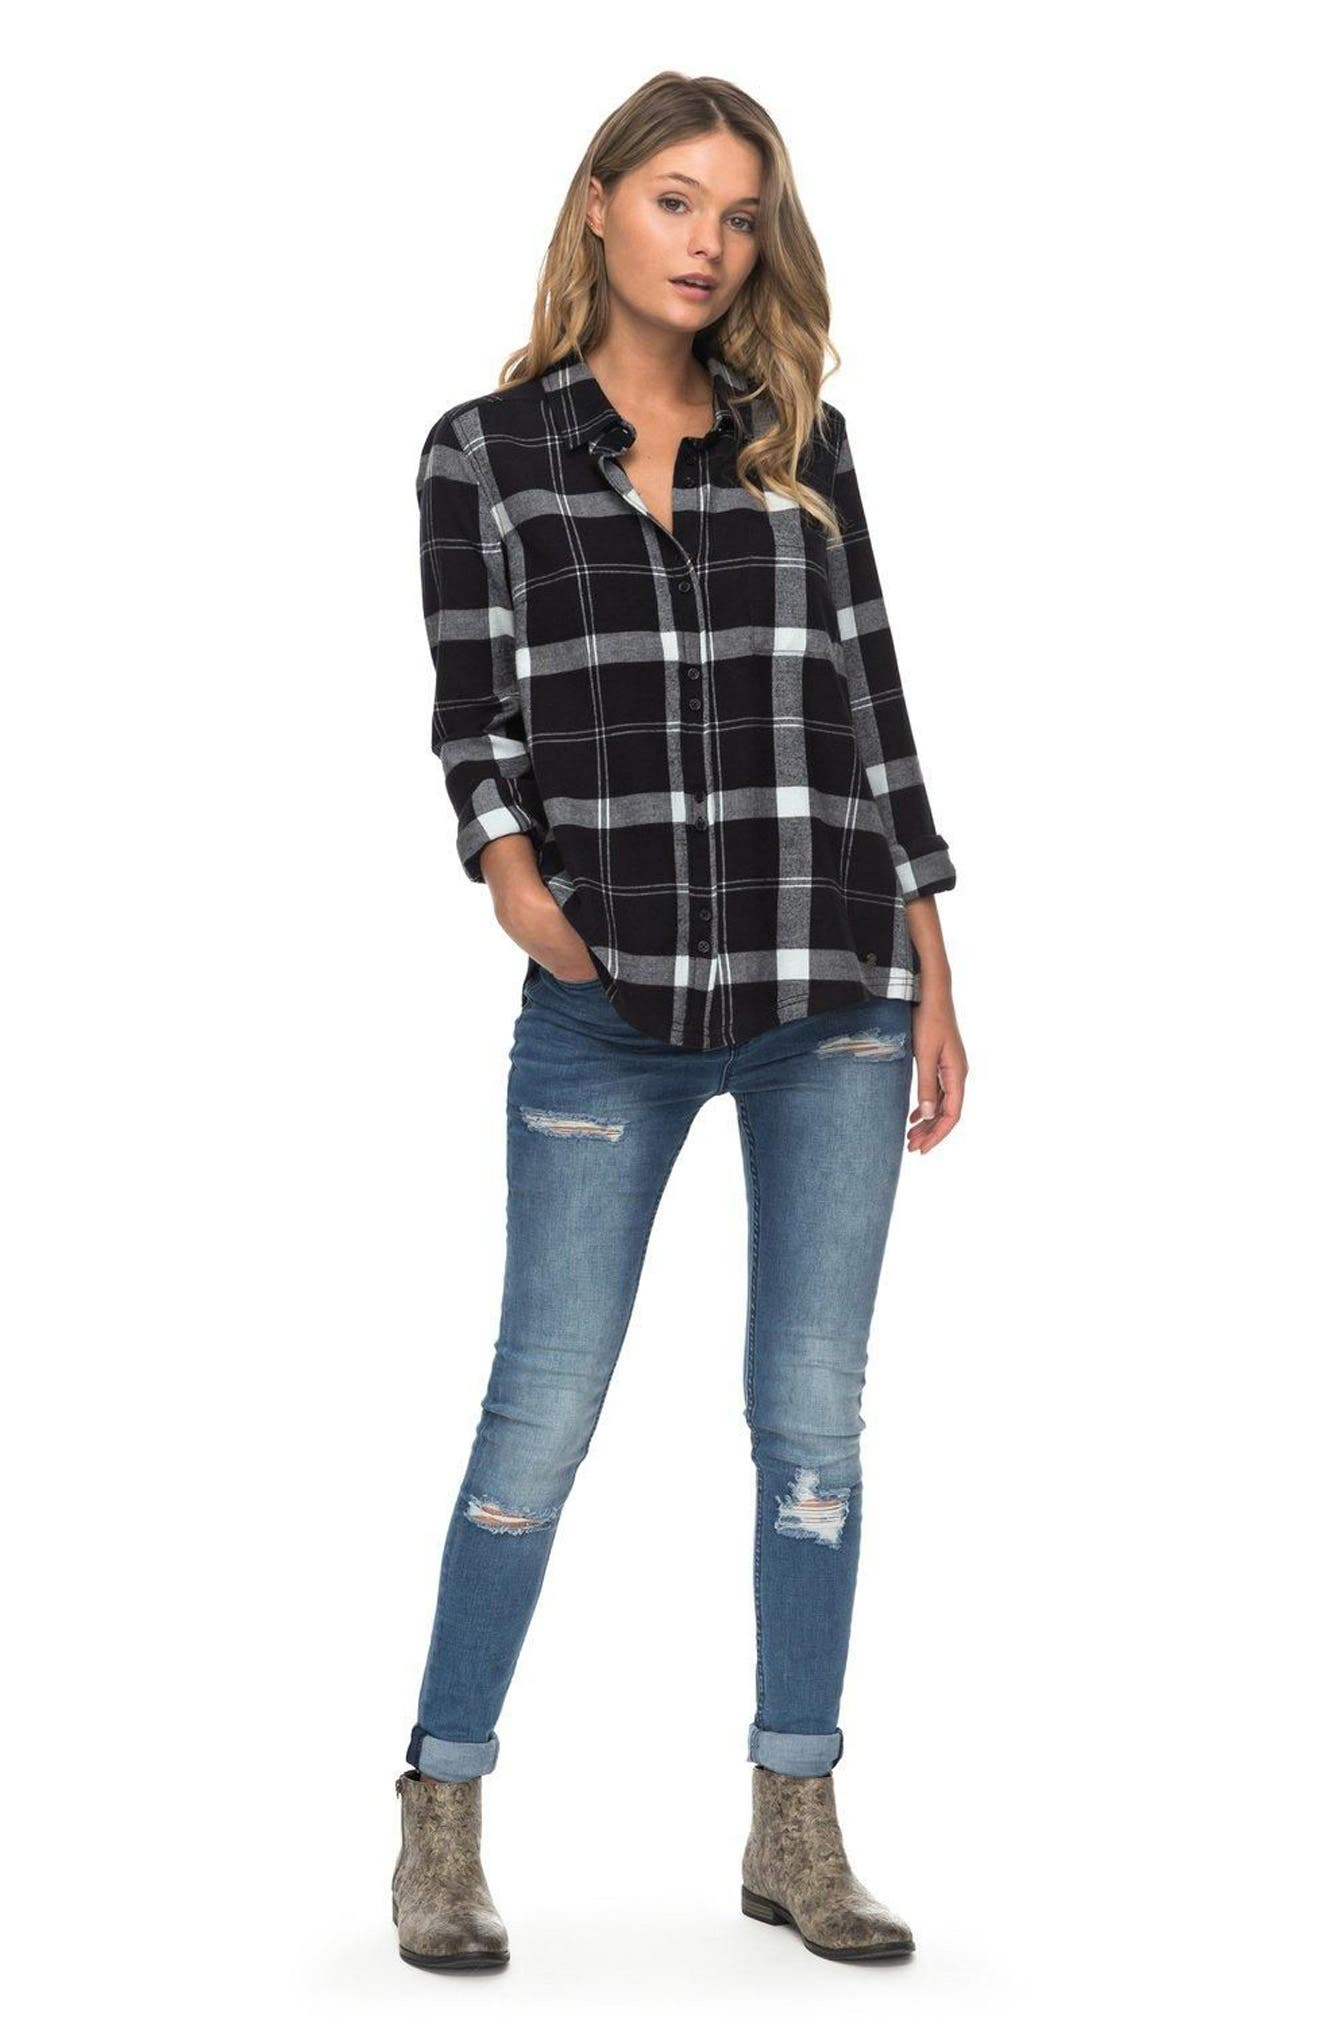 Heavy Feelings Plaid Cotton Shirt,                             Alternate thumbnail 2, color,                             Checked Plaid Combo Anthracite